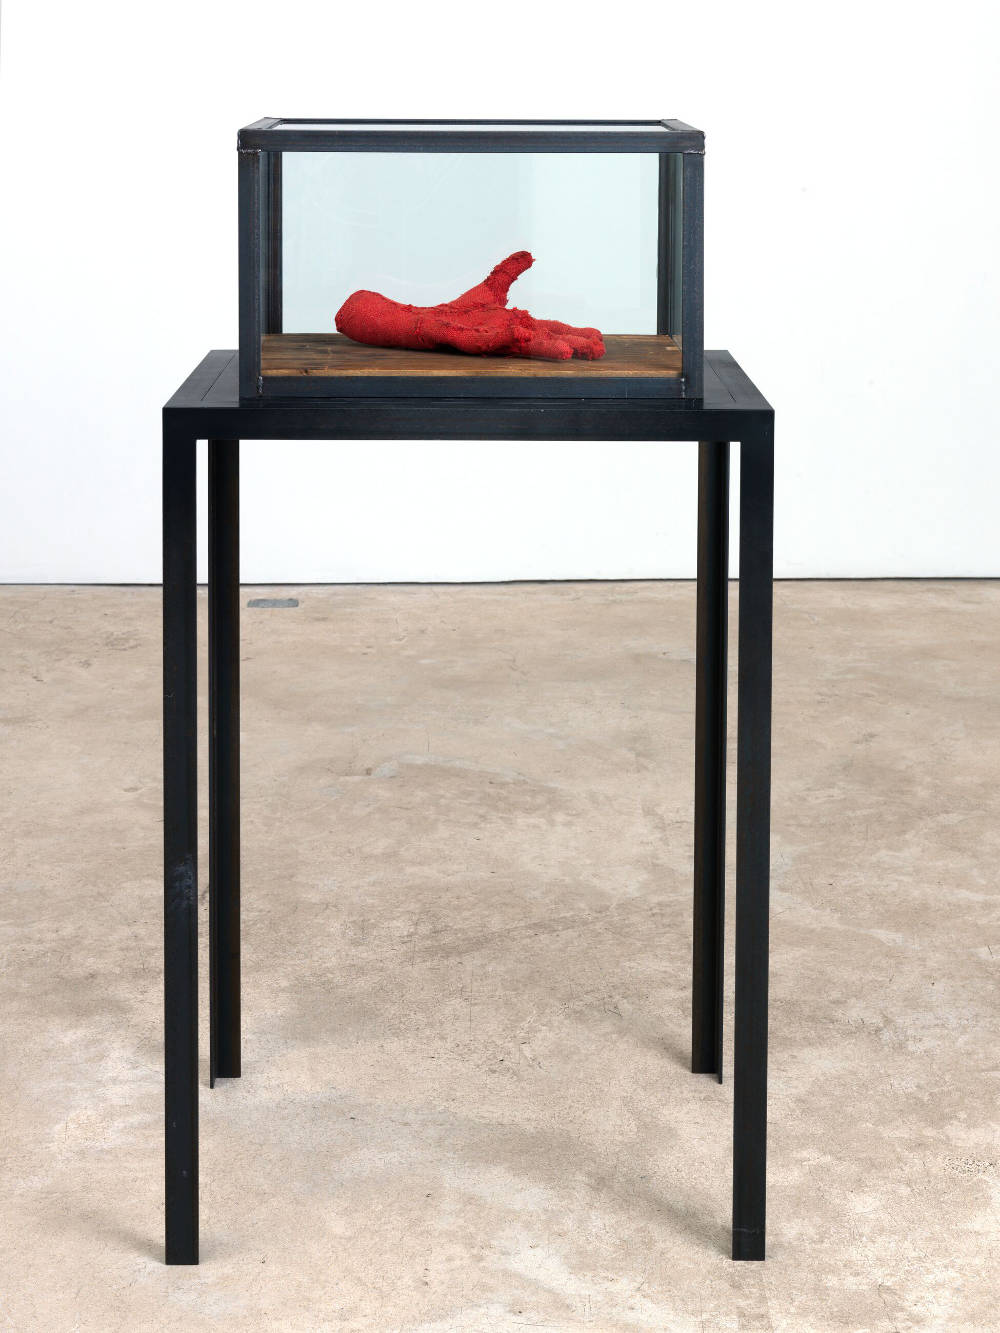 Louise Bourgeois, Hand, 2001. Fabric, wood, glass and steel 31.8 x 53.3 x 35.6 cm / 12 1/2 x 21 x 14 in. Steel pedestal: 101.6 x 68.5 x 50.8 cm / 40 x 27 x 20 in. Photo: Christopher Burke © The Easton Foundation/VAGA at ARS, NY. Courtesy The Easton Foundation and Hauser & Wirth